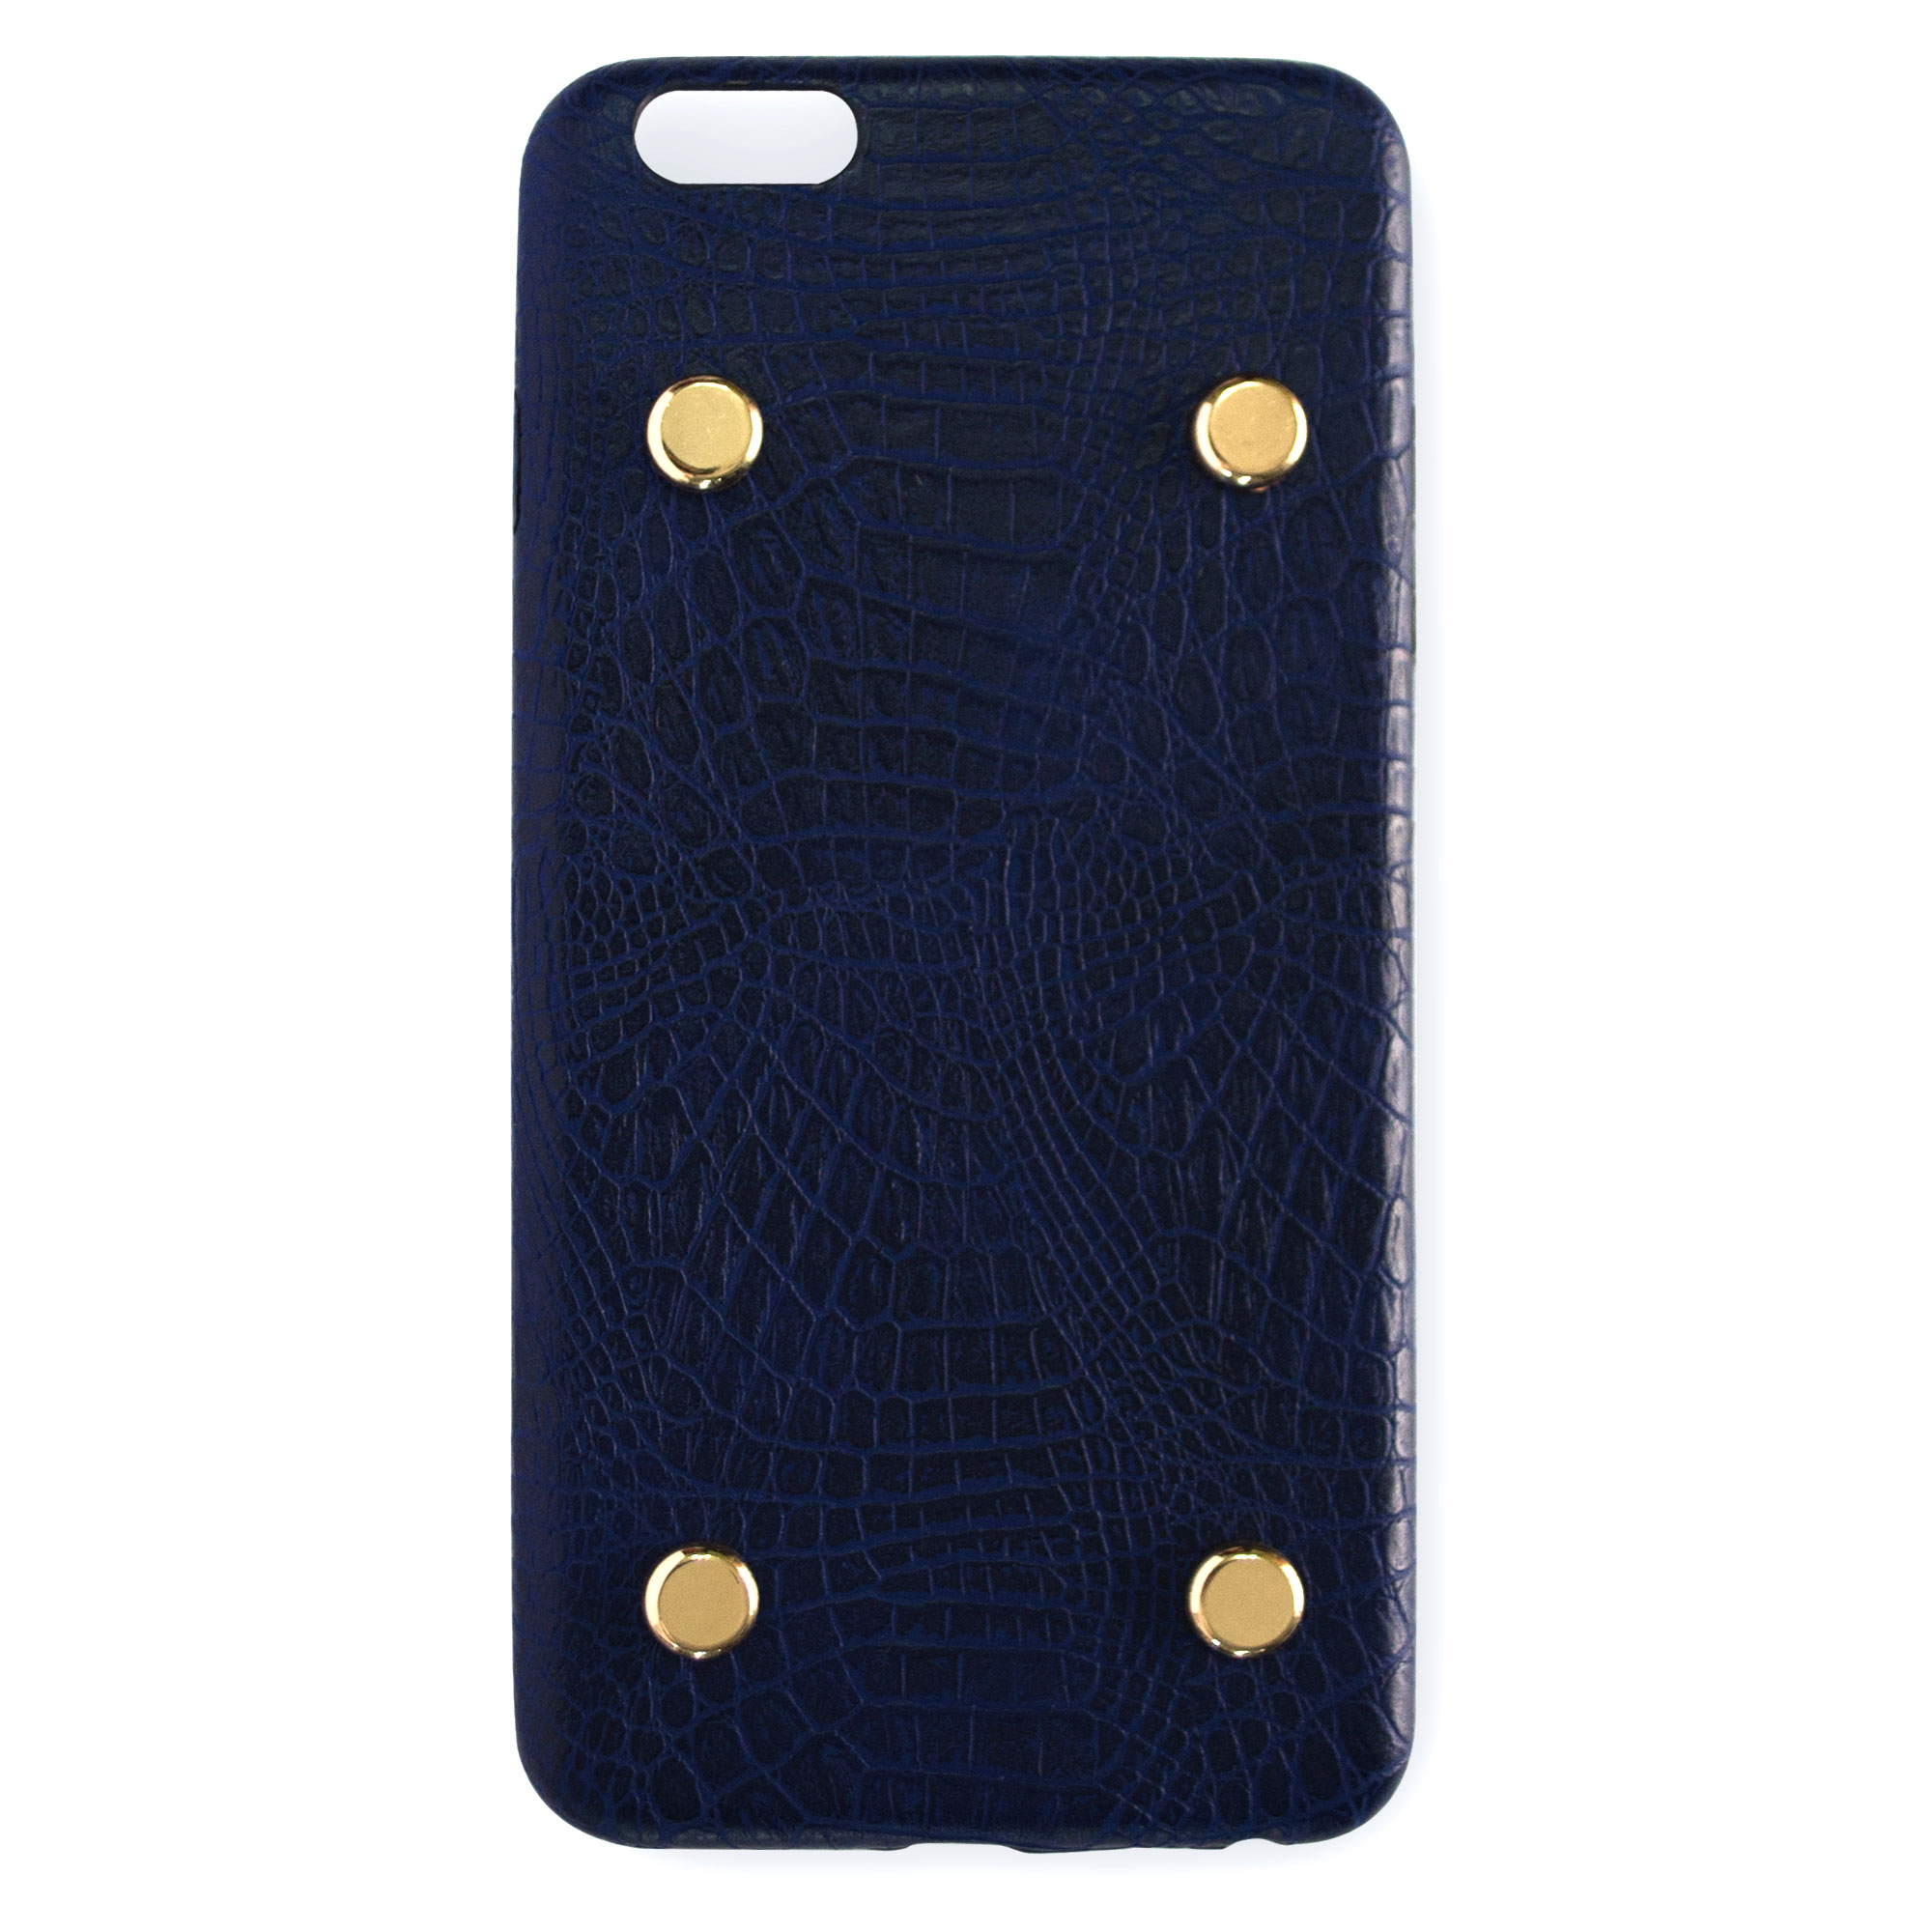 Basic Case with Gold Studs - Leather Midnight Blue